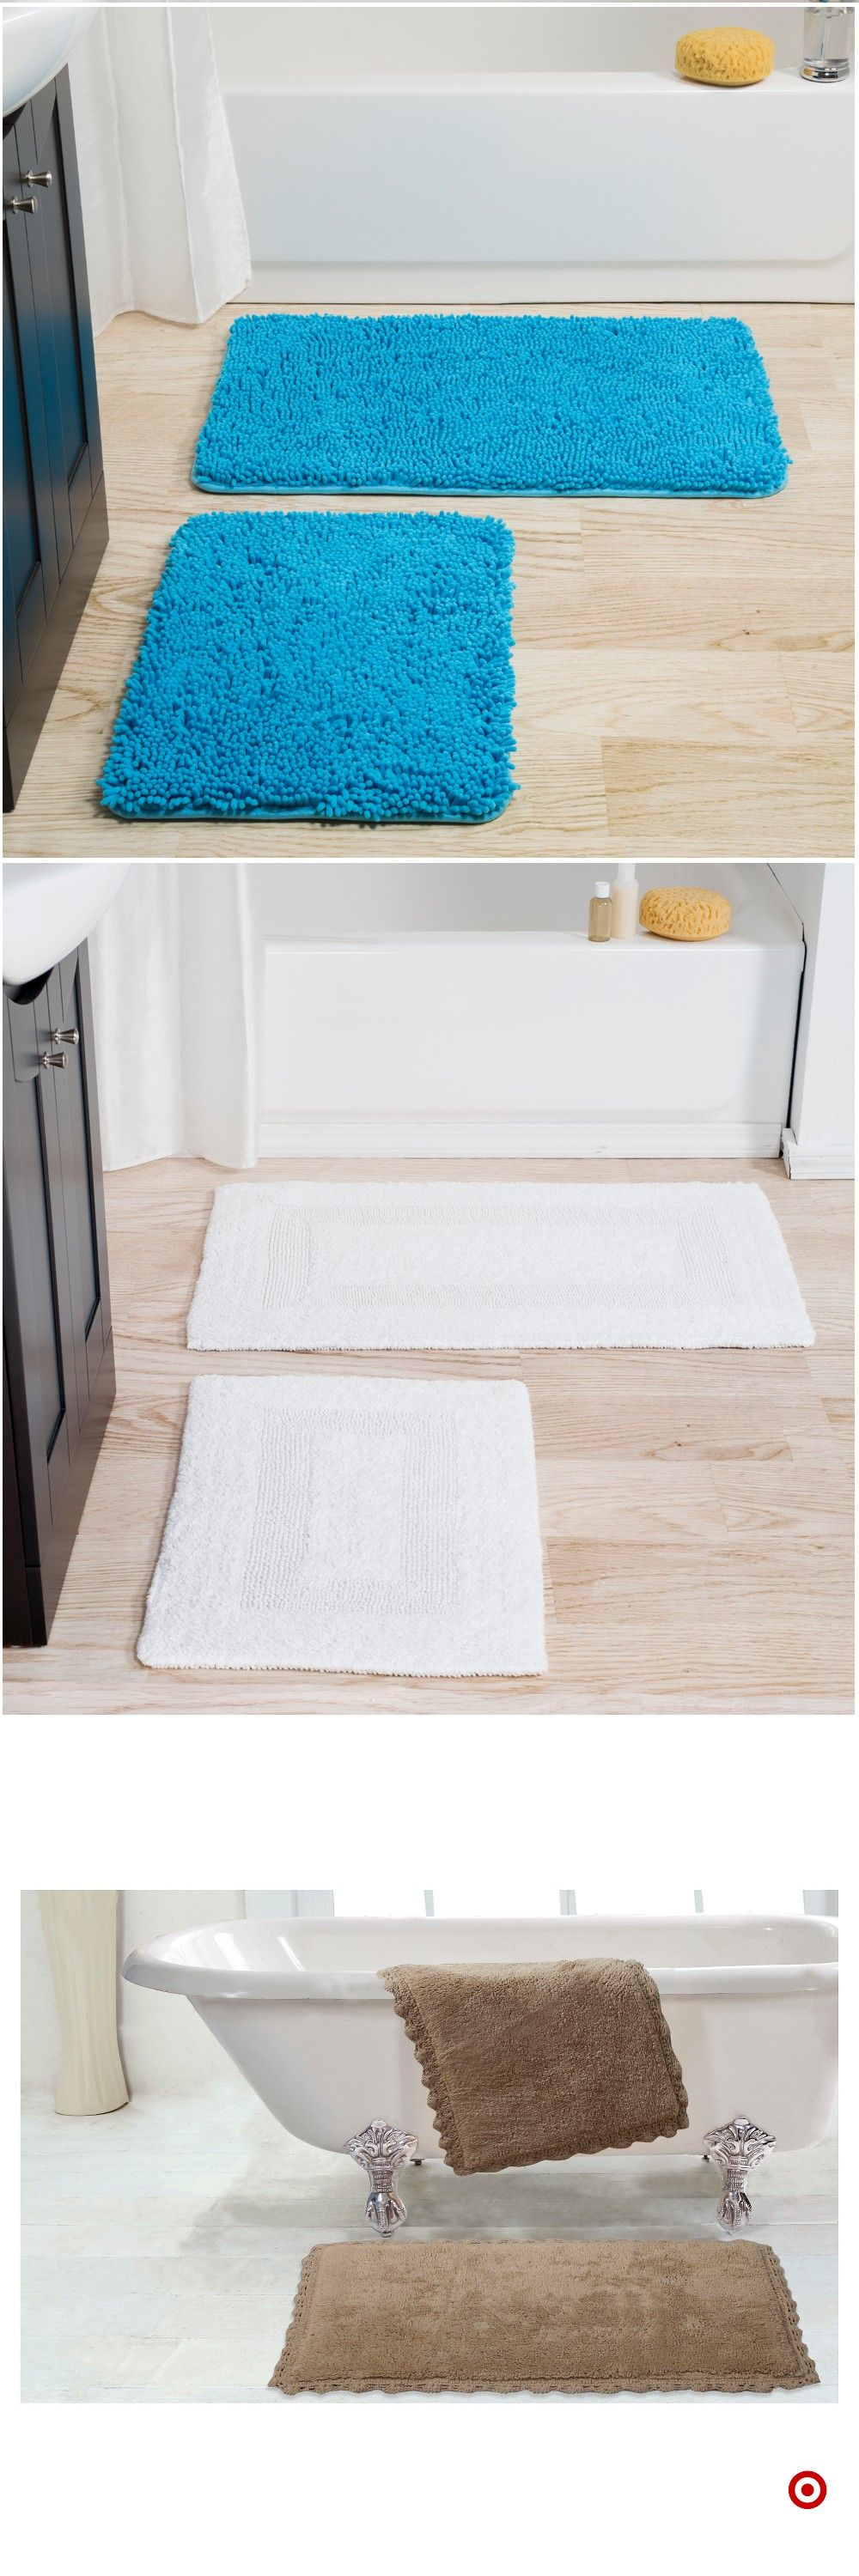 Bath Rug Set Walmart: Shop Target For Bath Rug Set You Will Love At Great Low